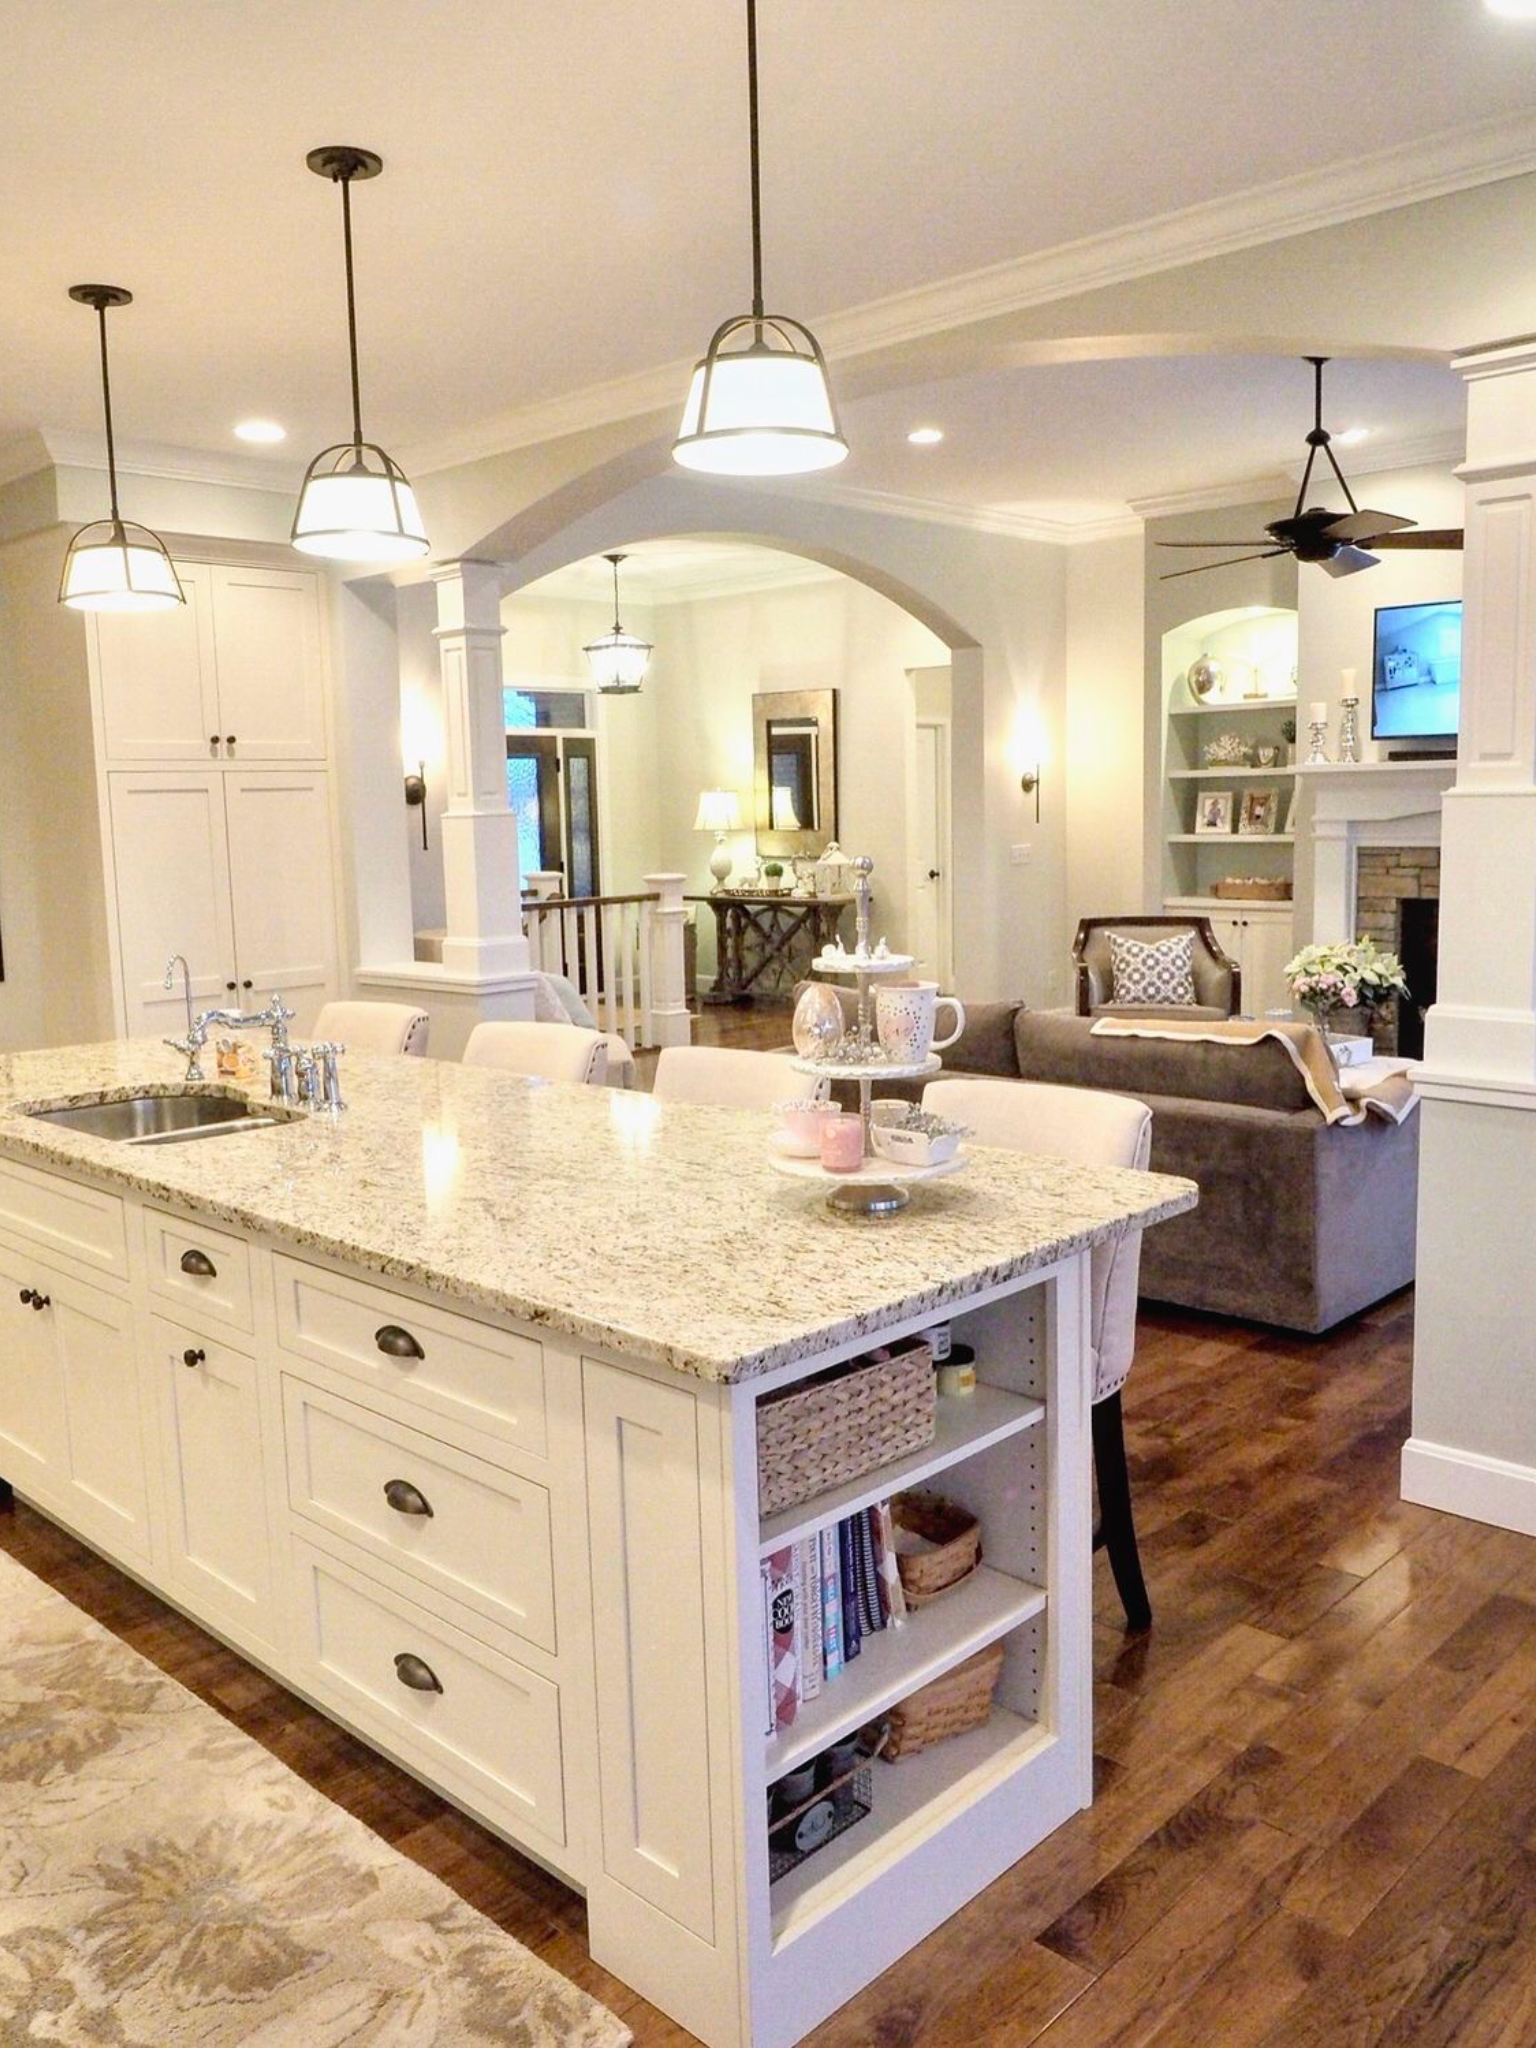 white kitchen. White Kitchen, Off-white Cabinets, Sherwin Williams Conservative Gray, New Venetian Gold Granite, Open Layout, Floor Plan, Concept, Hickory Wood Kitchen